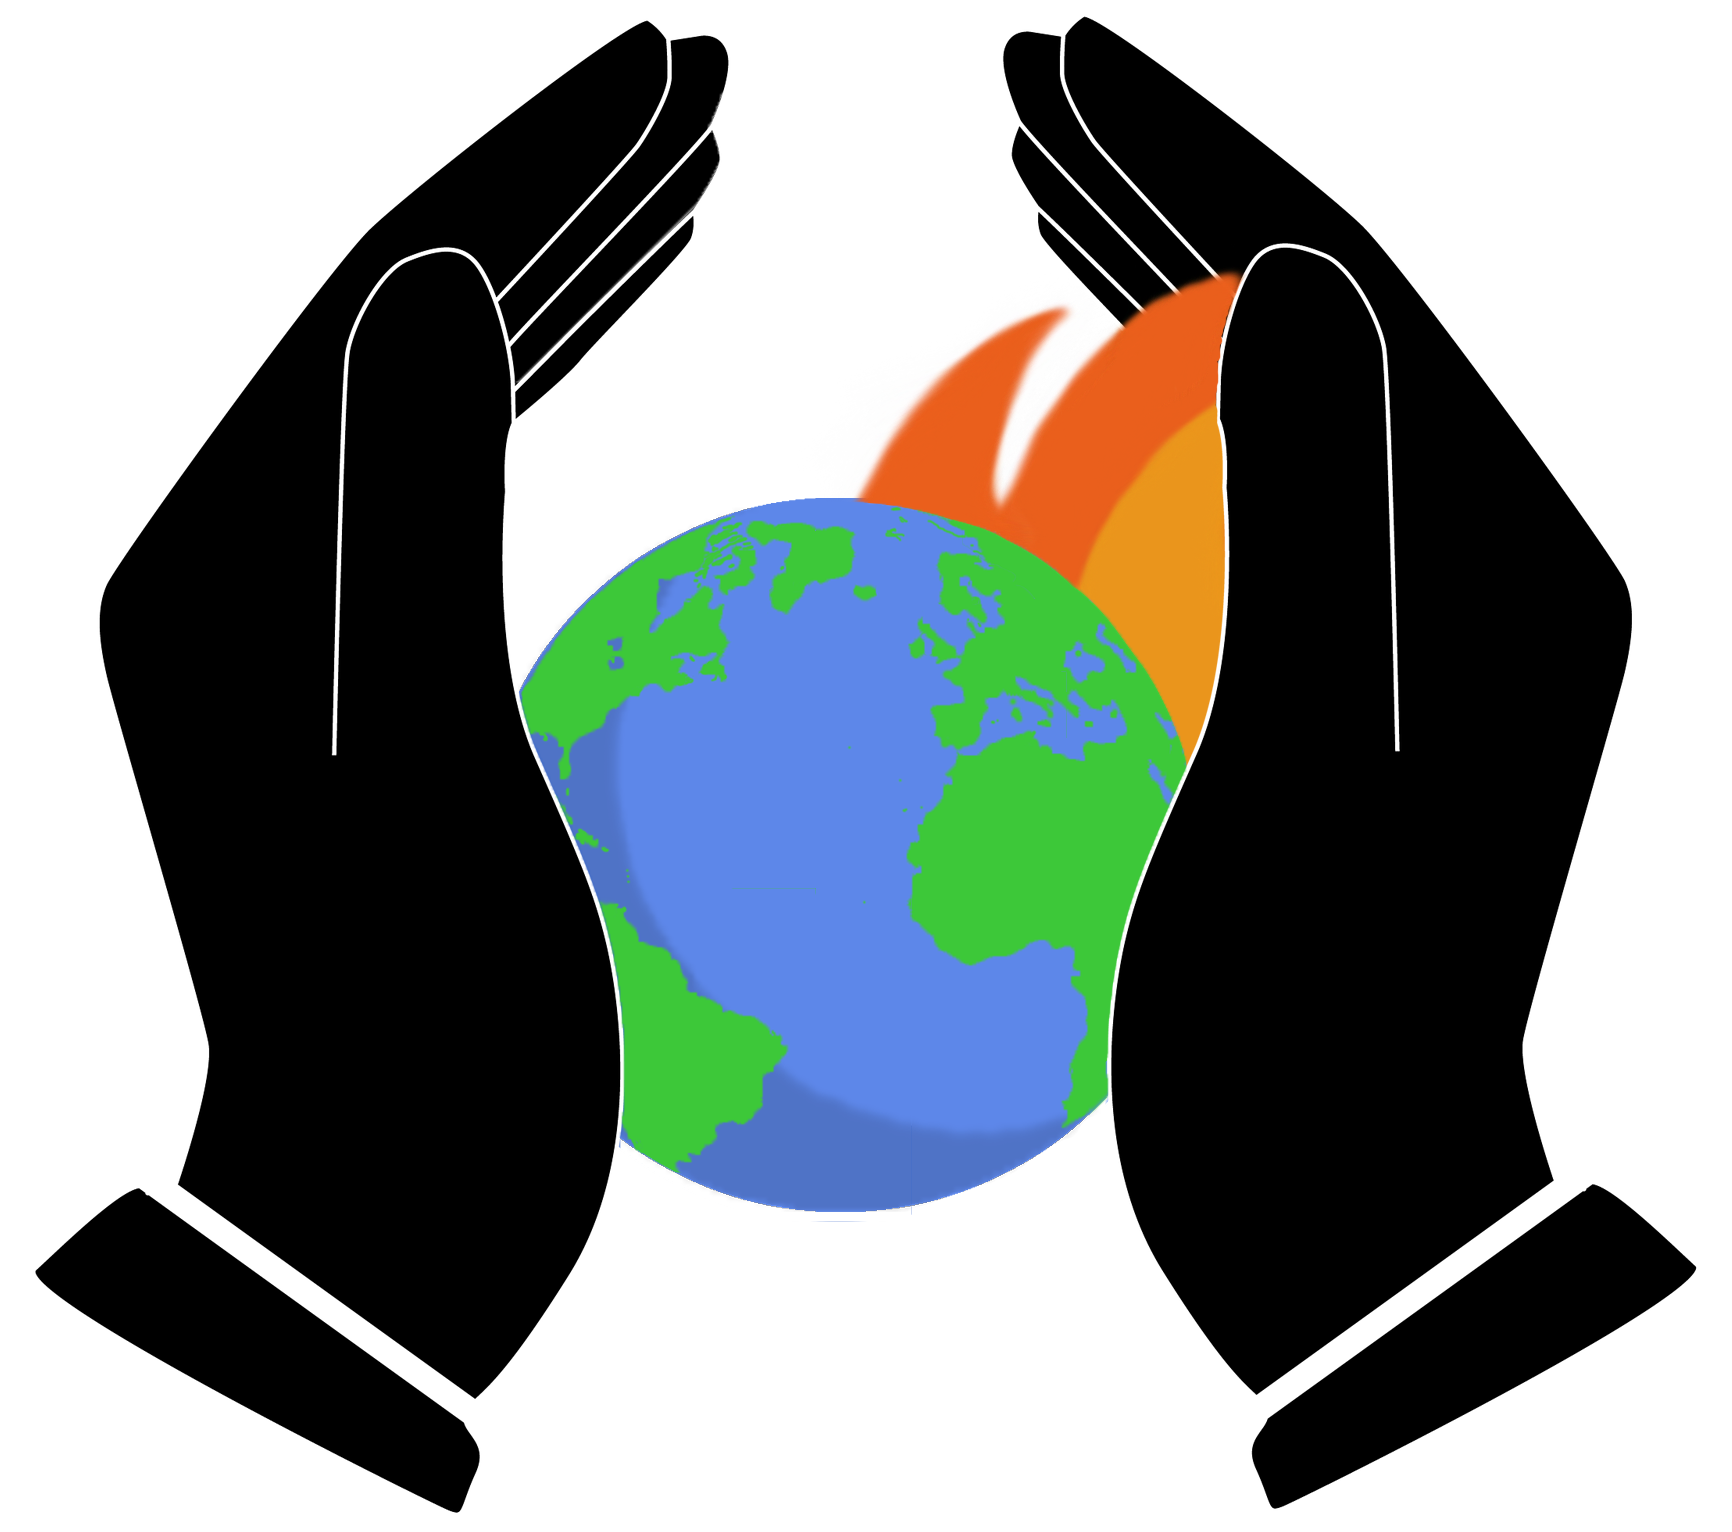 File:Climate change mitigation icon.png.